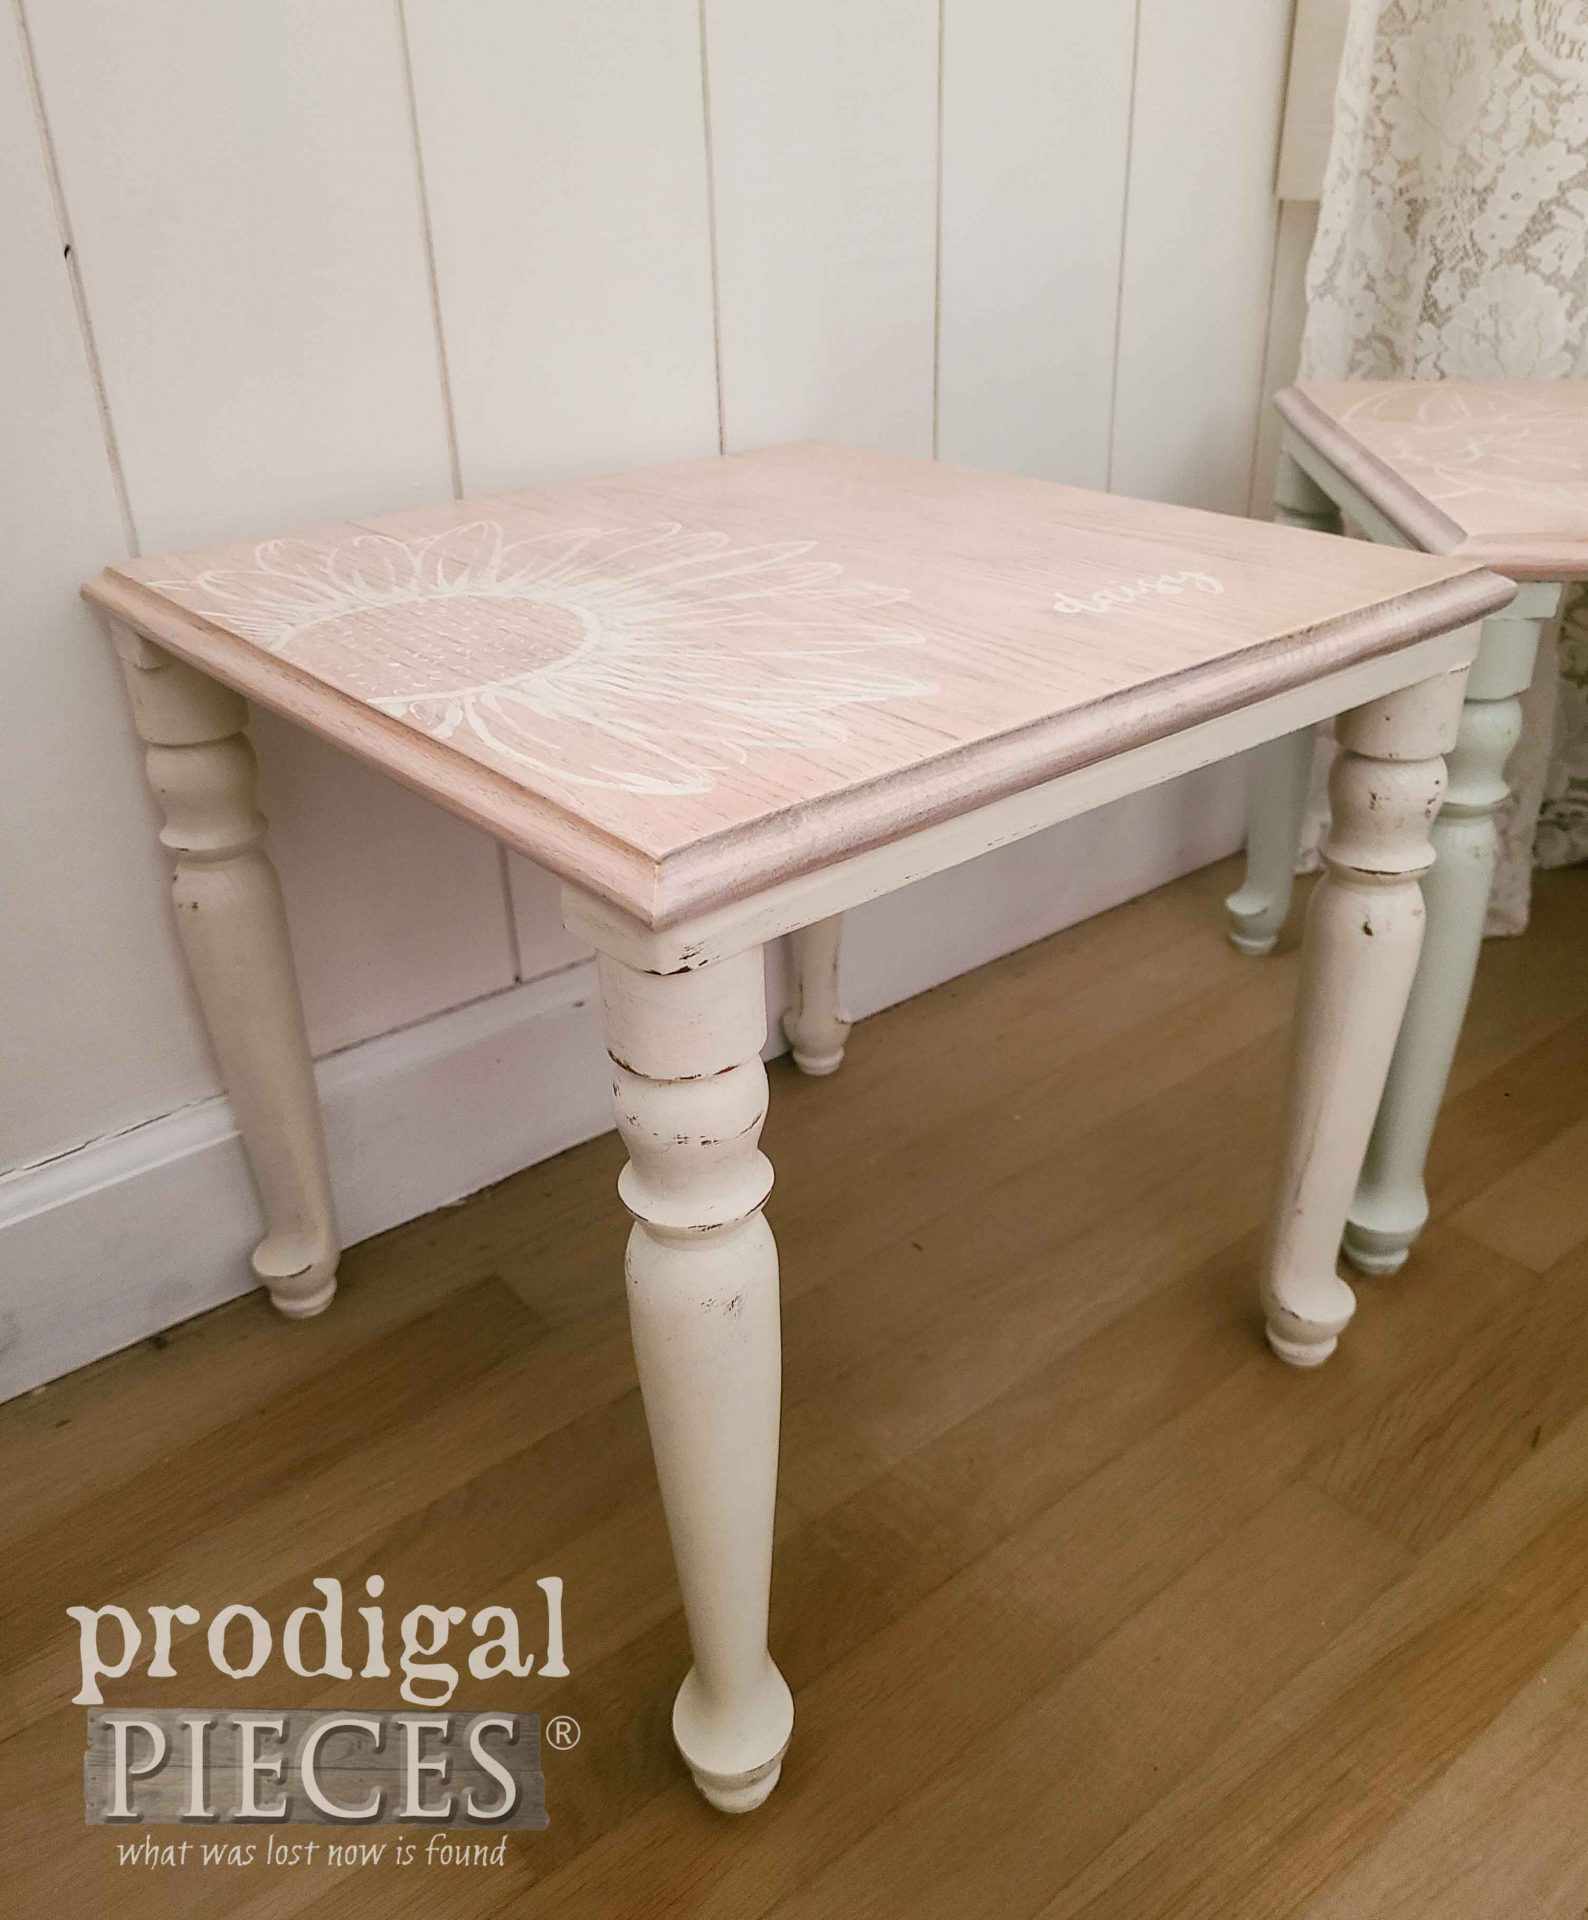 Daisy Flower on White Stacking Table | prodigalpieces.com #prodigalpieces #furniture